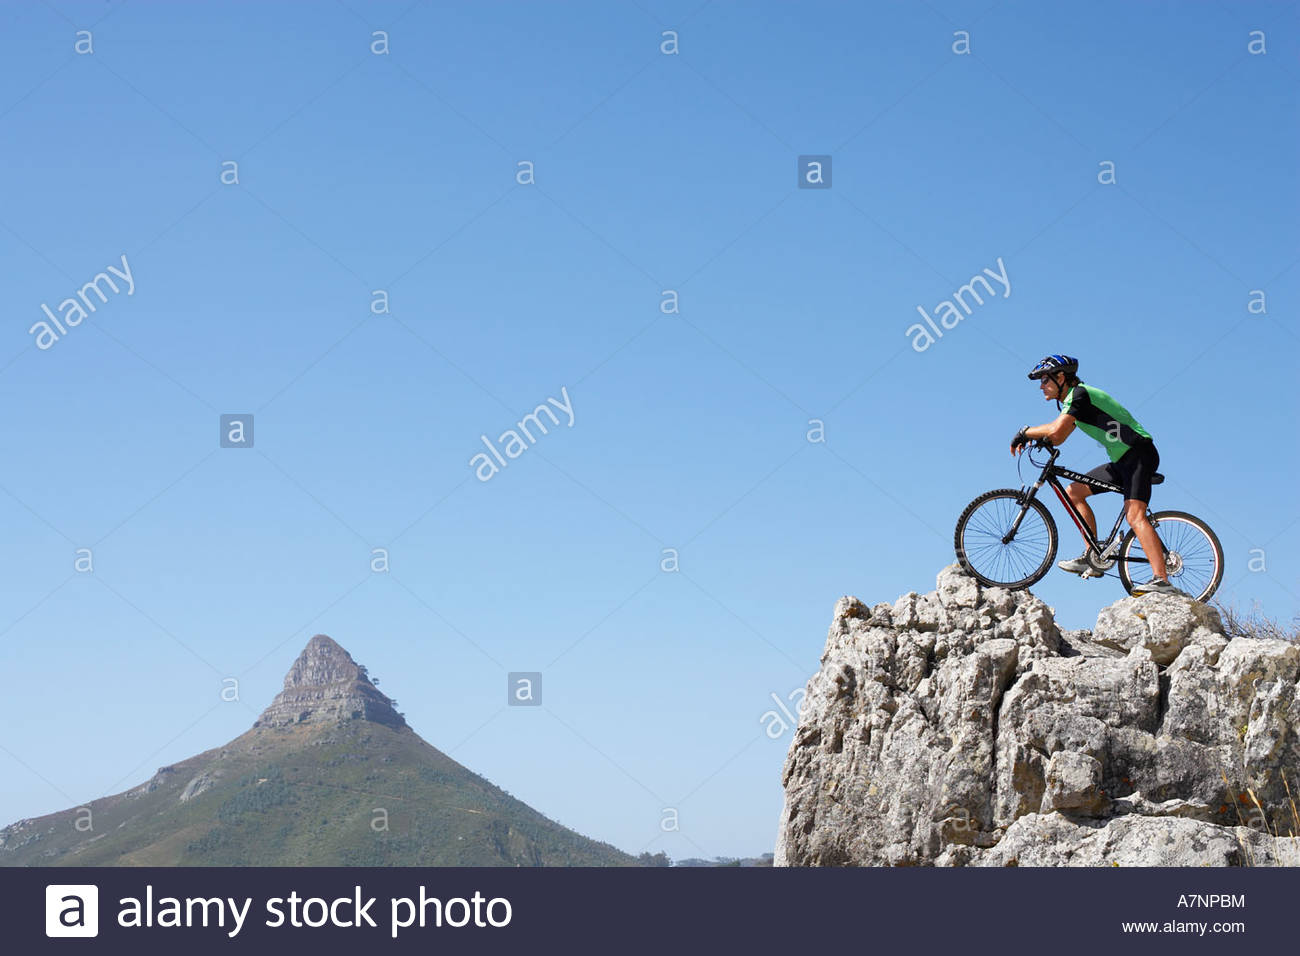 South Africa male mountain biker standing at edge of rock looking at view profile - Stock Image